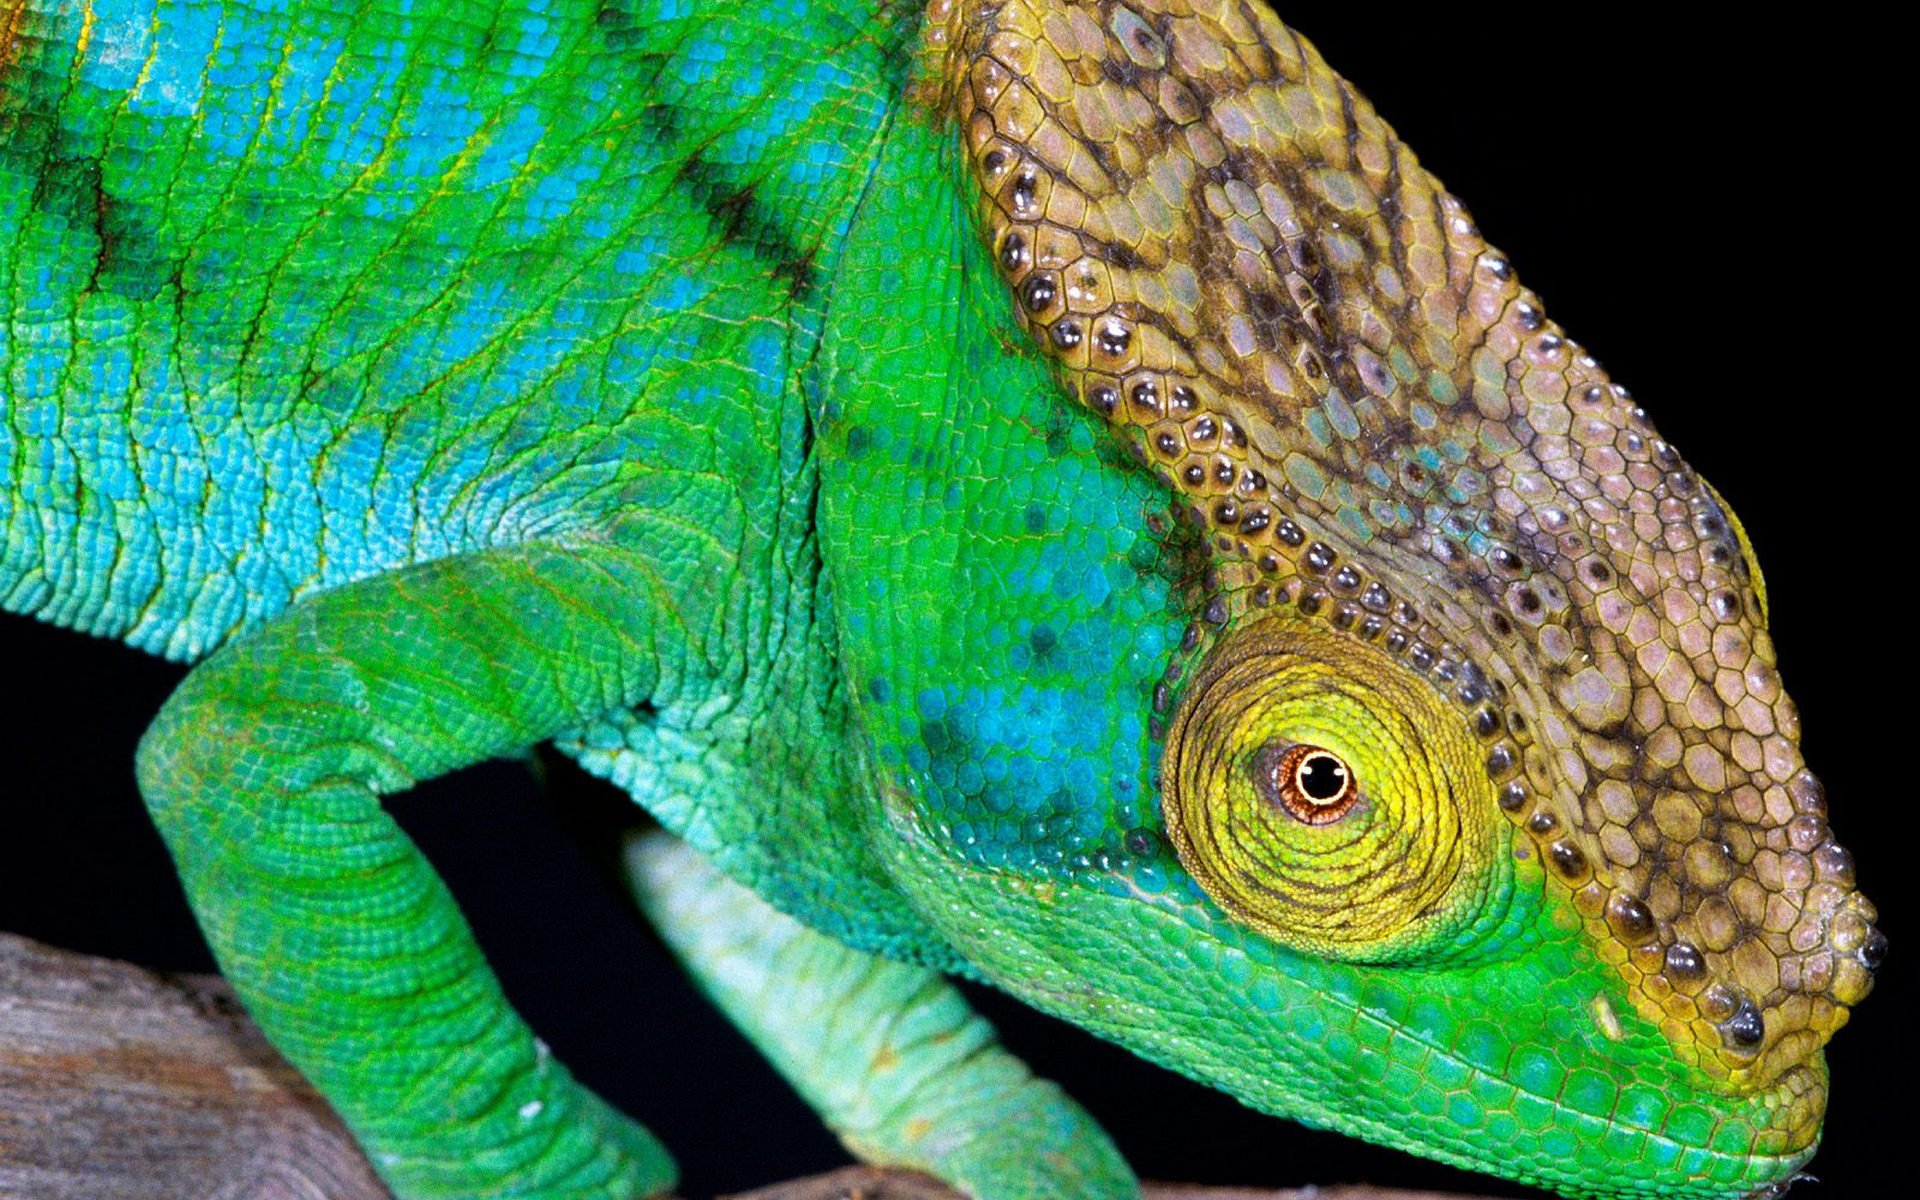 chameleon wallpaper 1920x1200 - photo #6